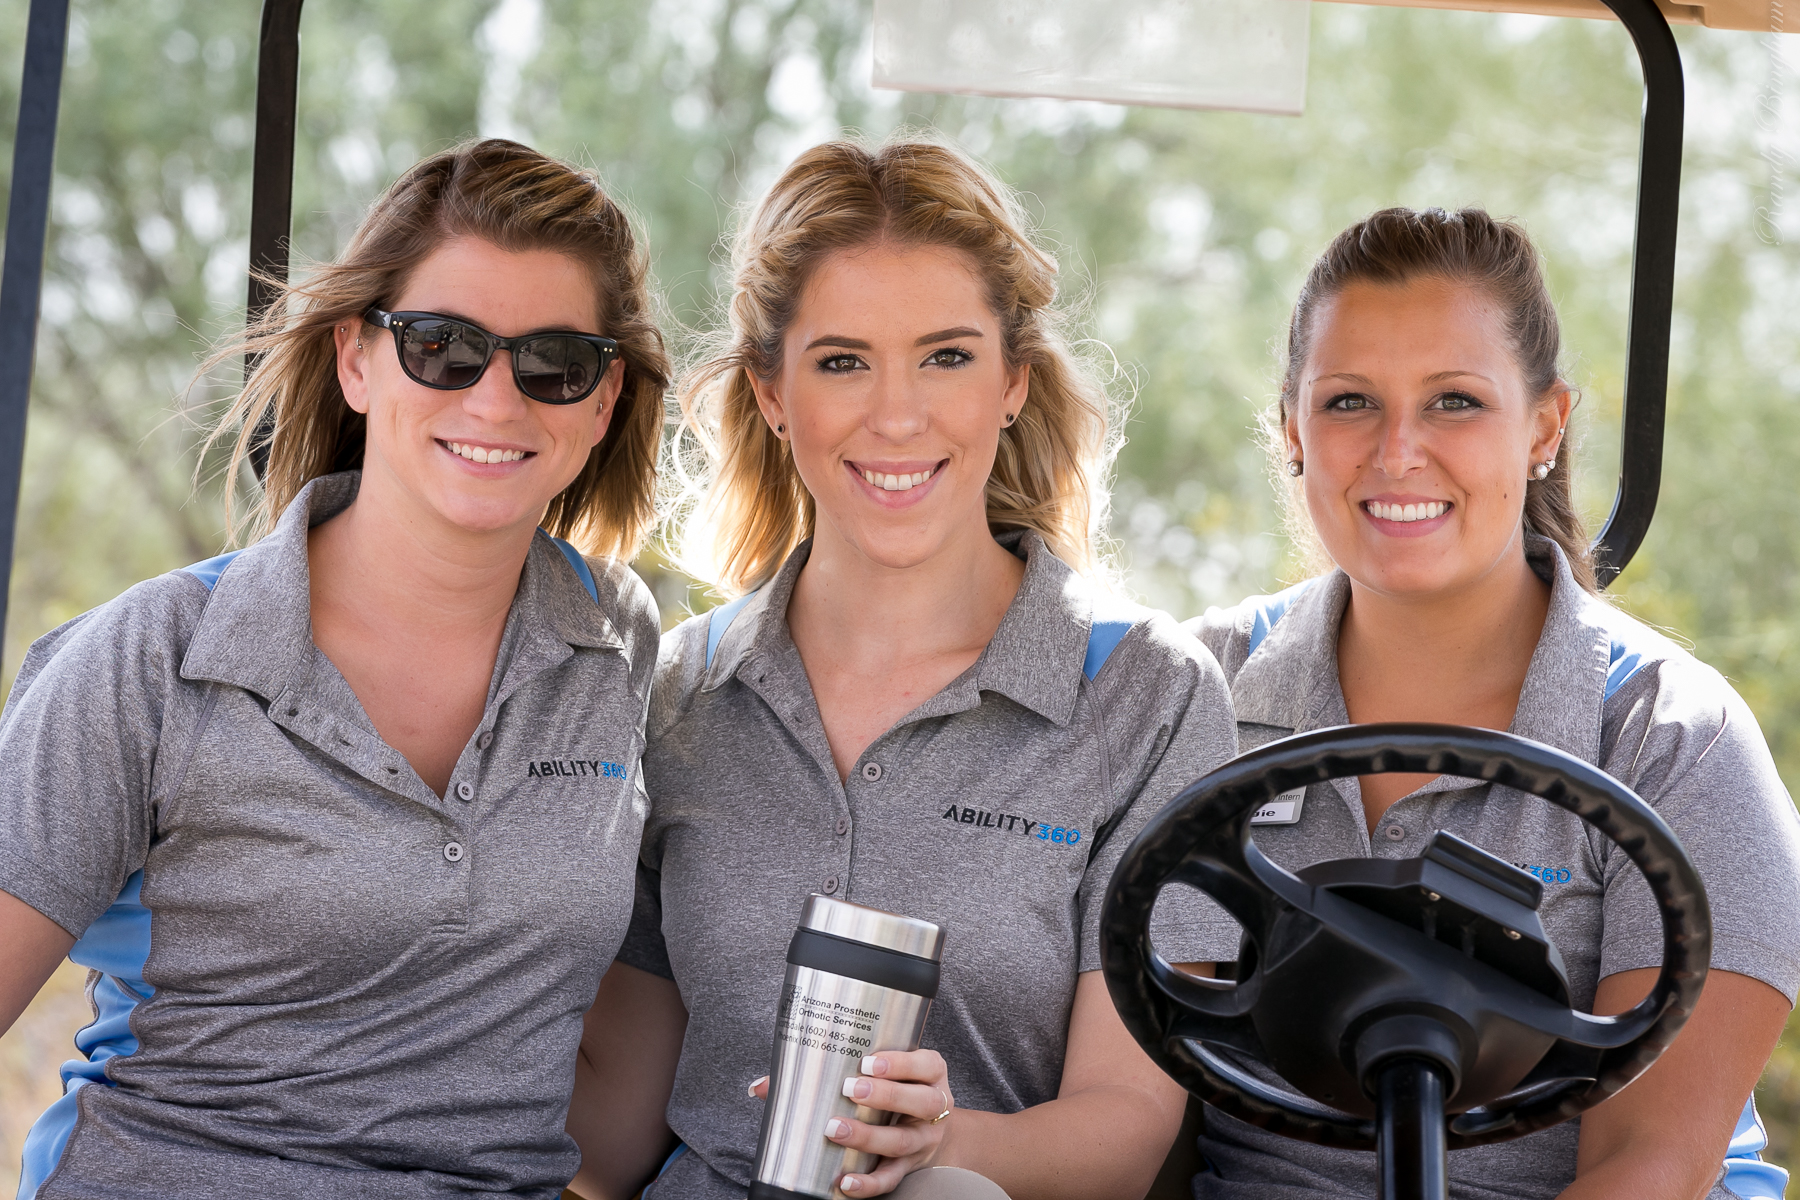 3 female Ability360 staff smiling while driving a golf cart.